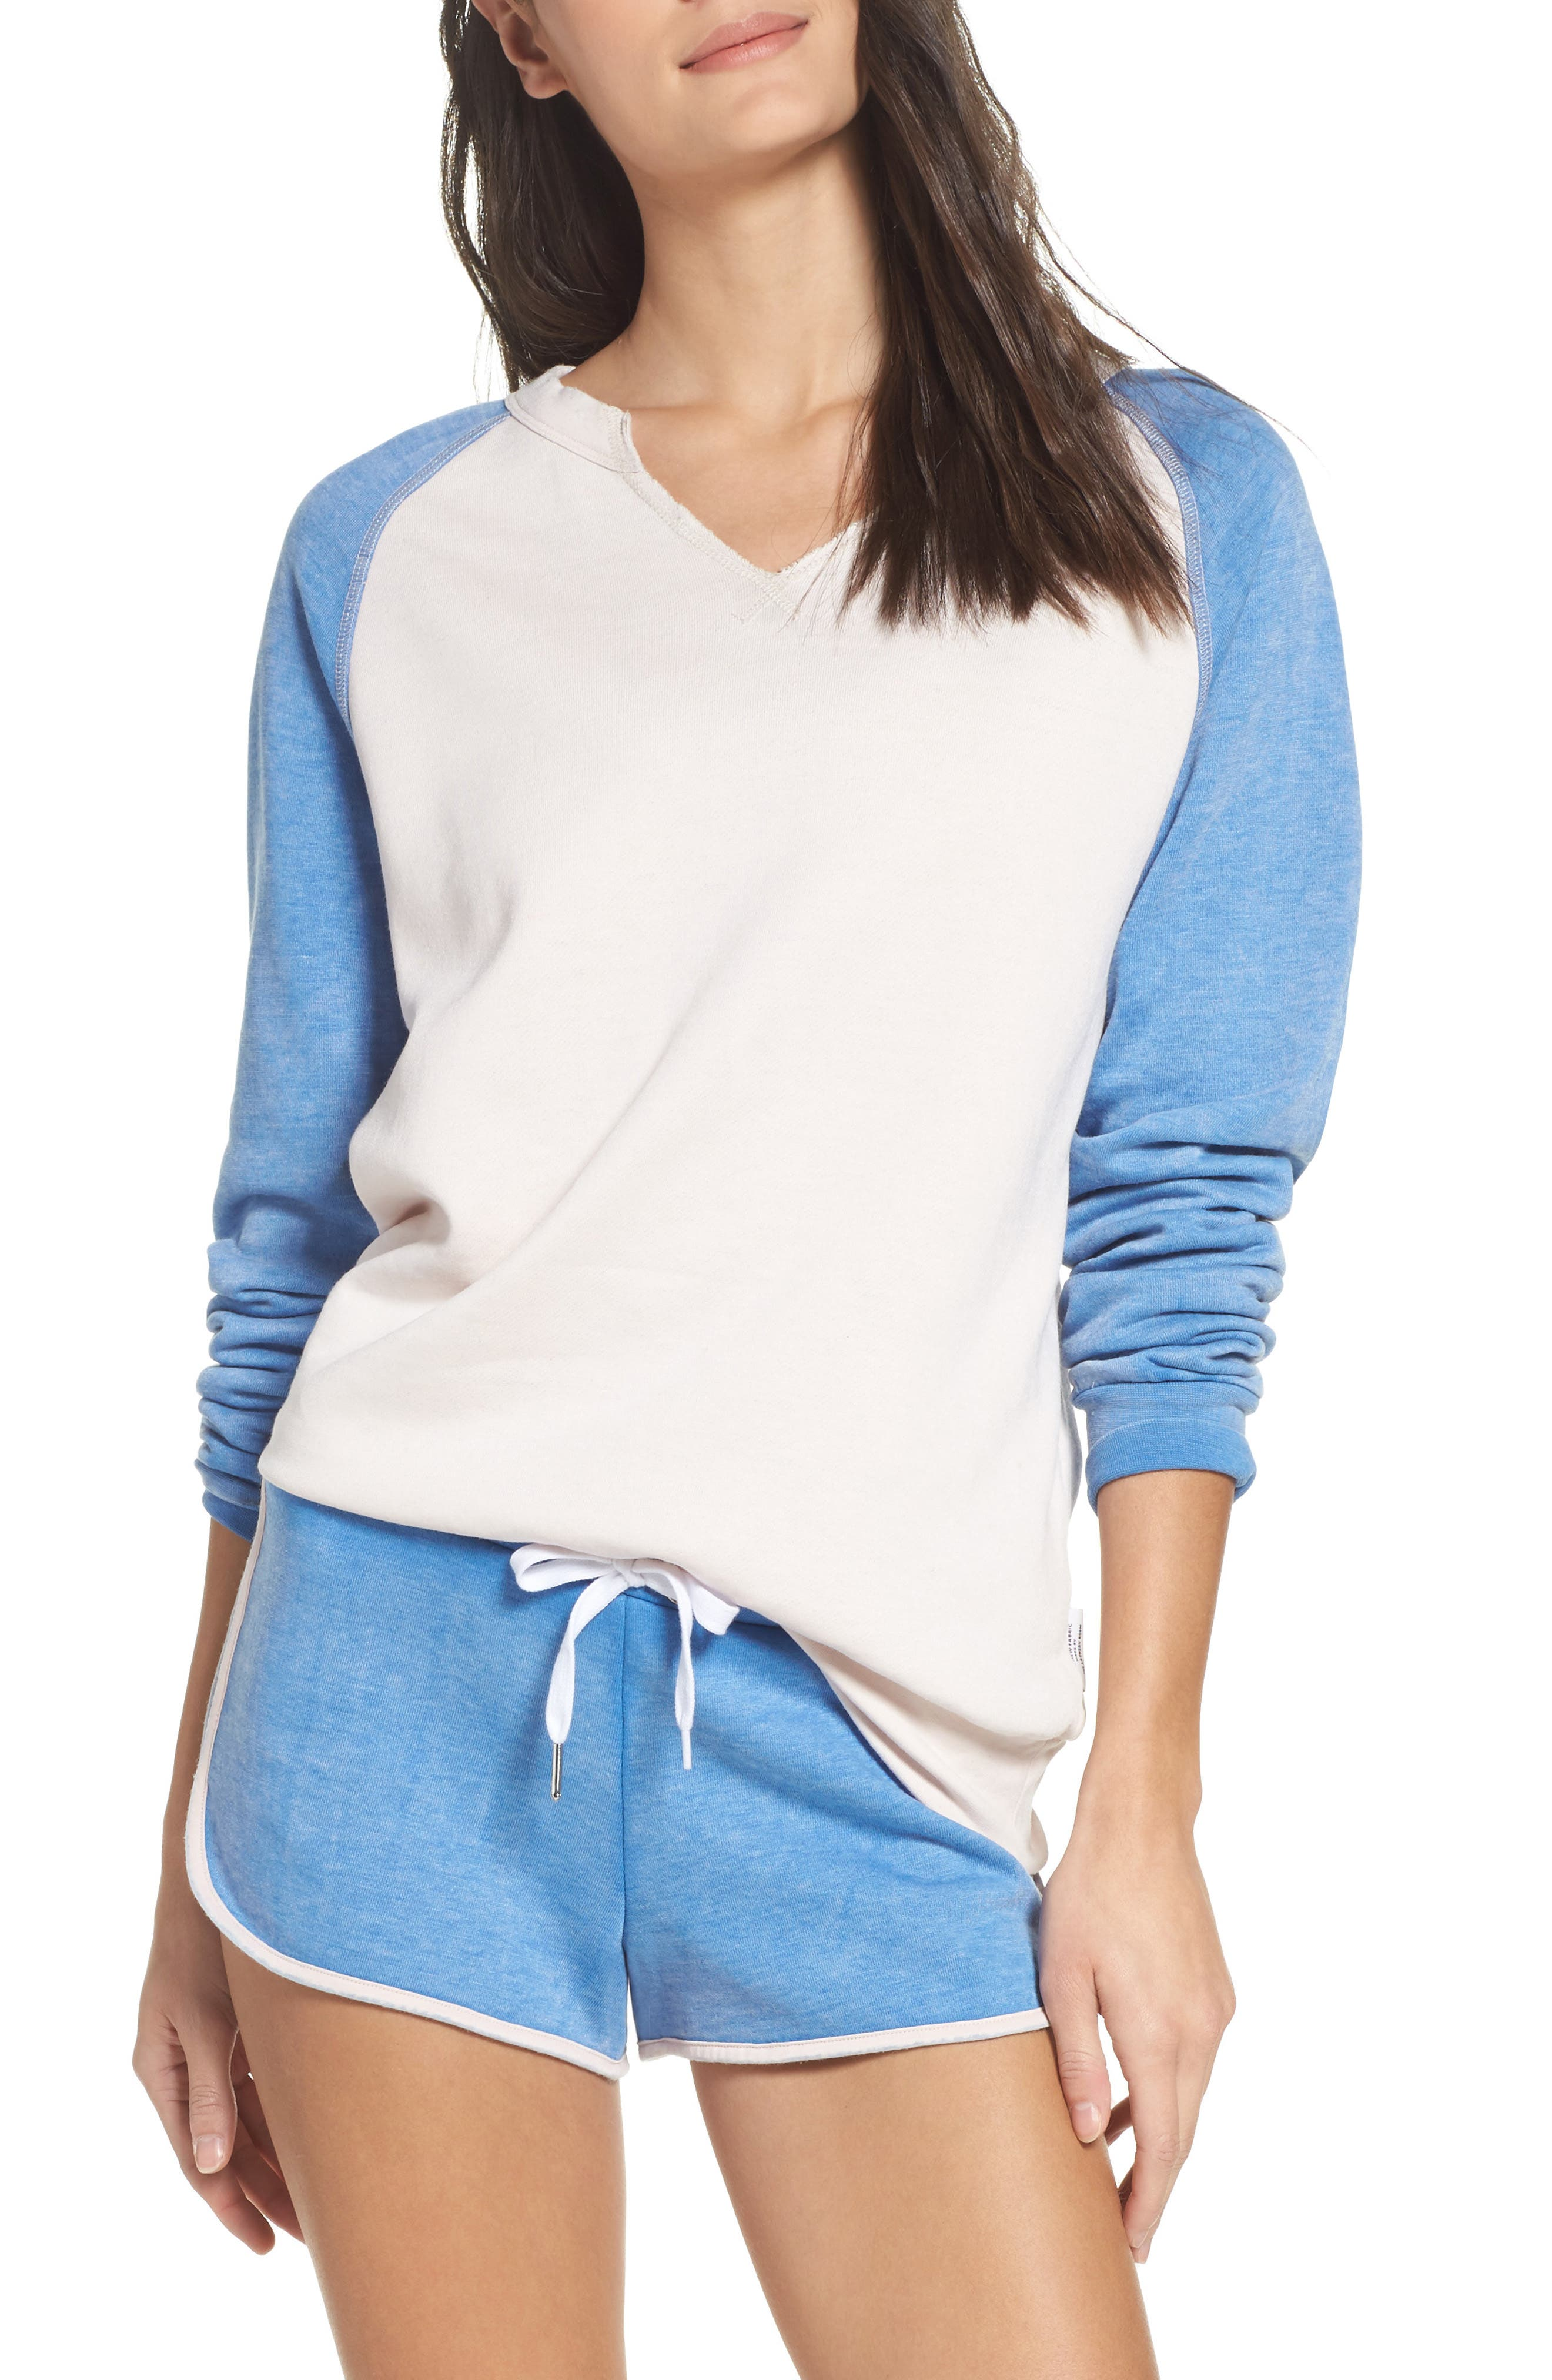 The Laundry Room Sweatshirt & Lounge Shorts